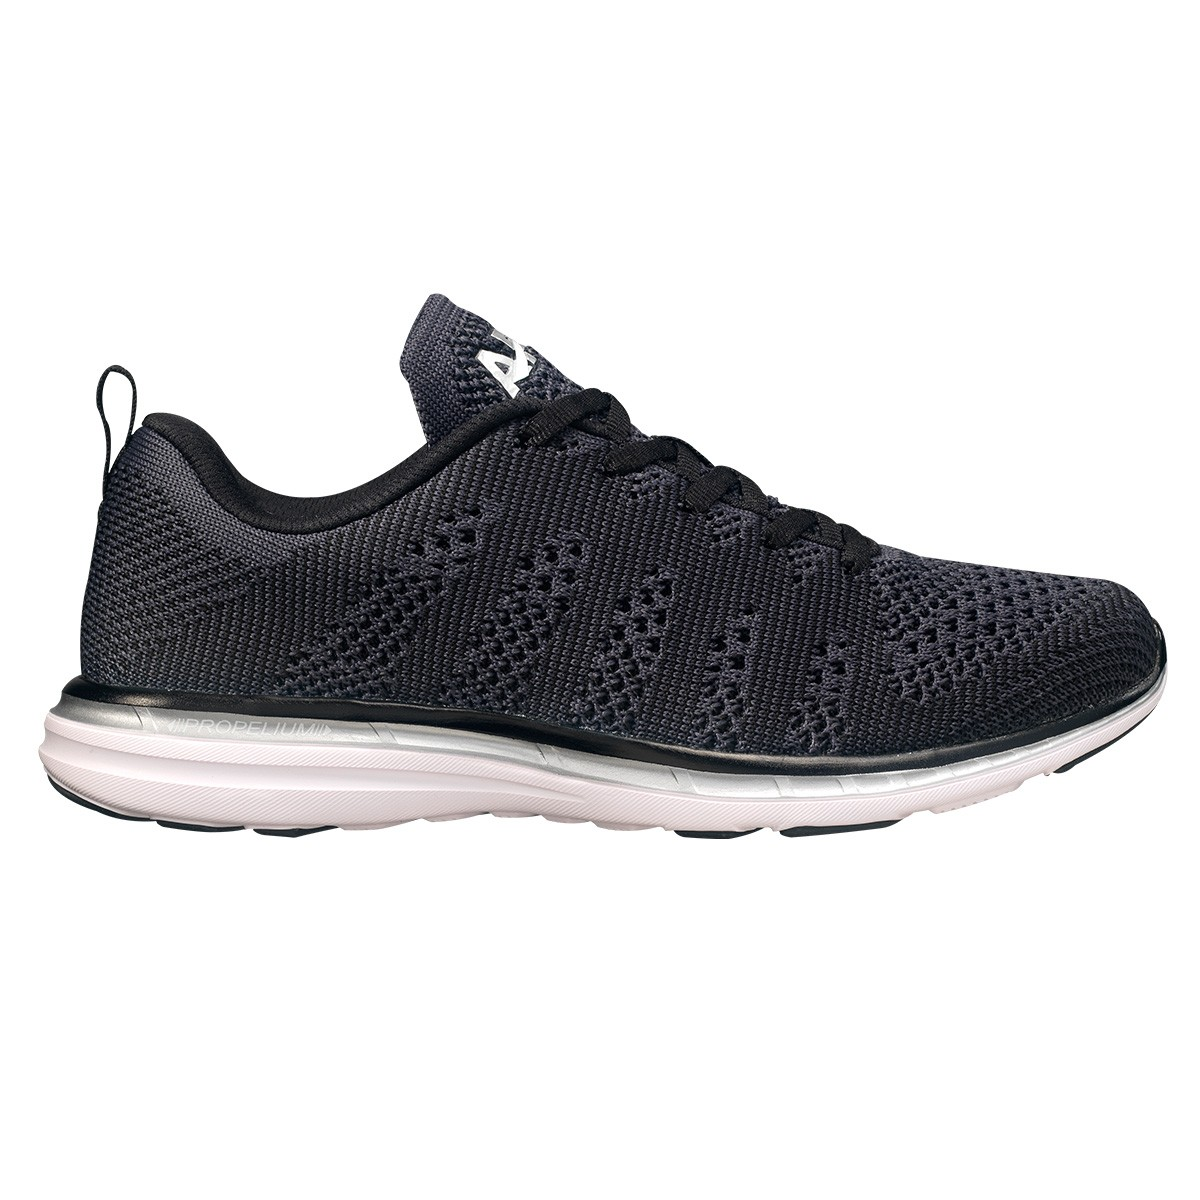 APL Women's Techloom Pro Black/Metallic Silver — $140